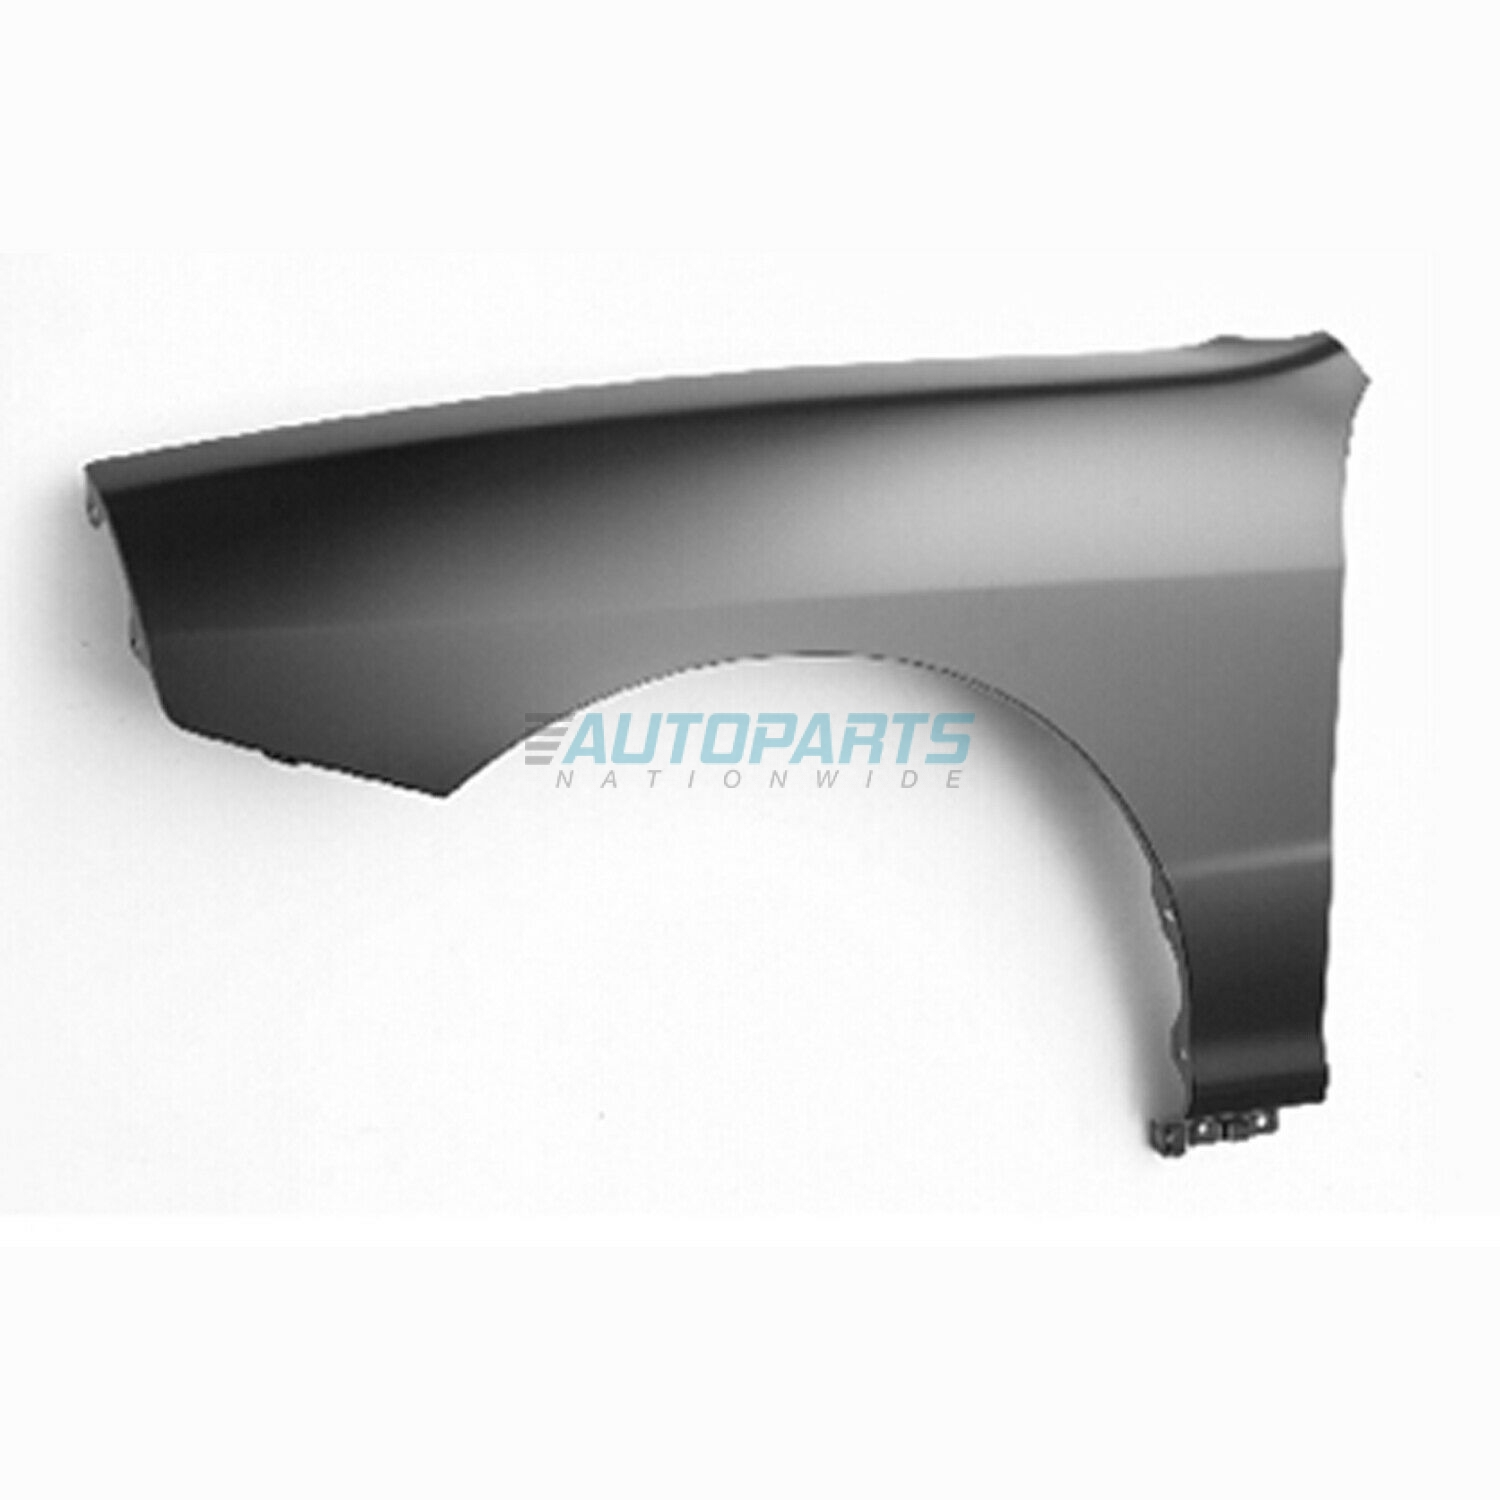 NEW FRONT RIGHT FENDER FITS 1994-2001 ACURA INTEGRA